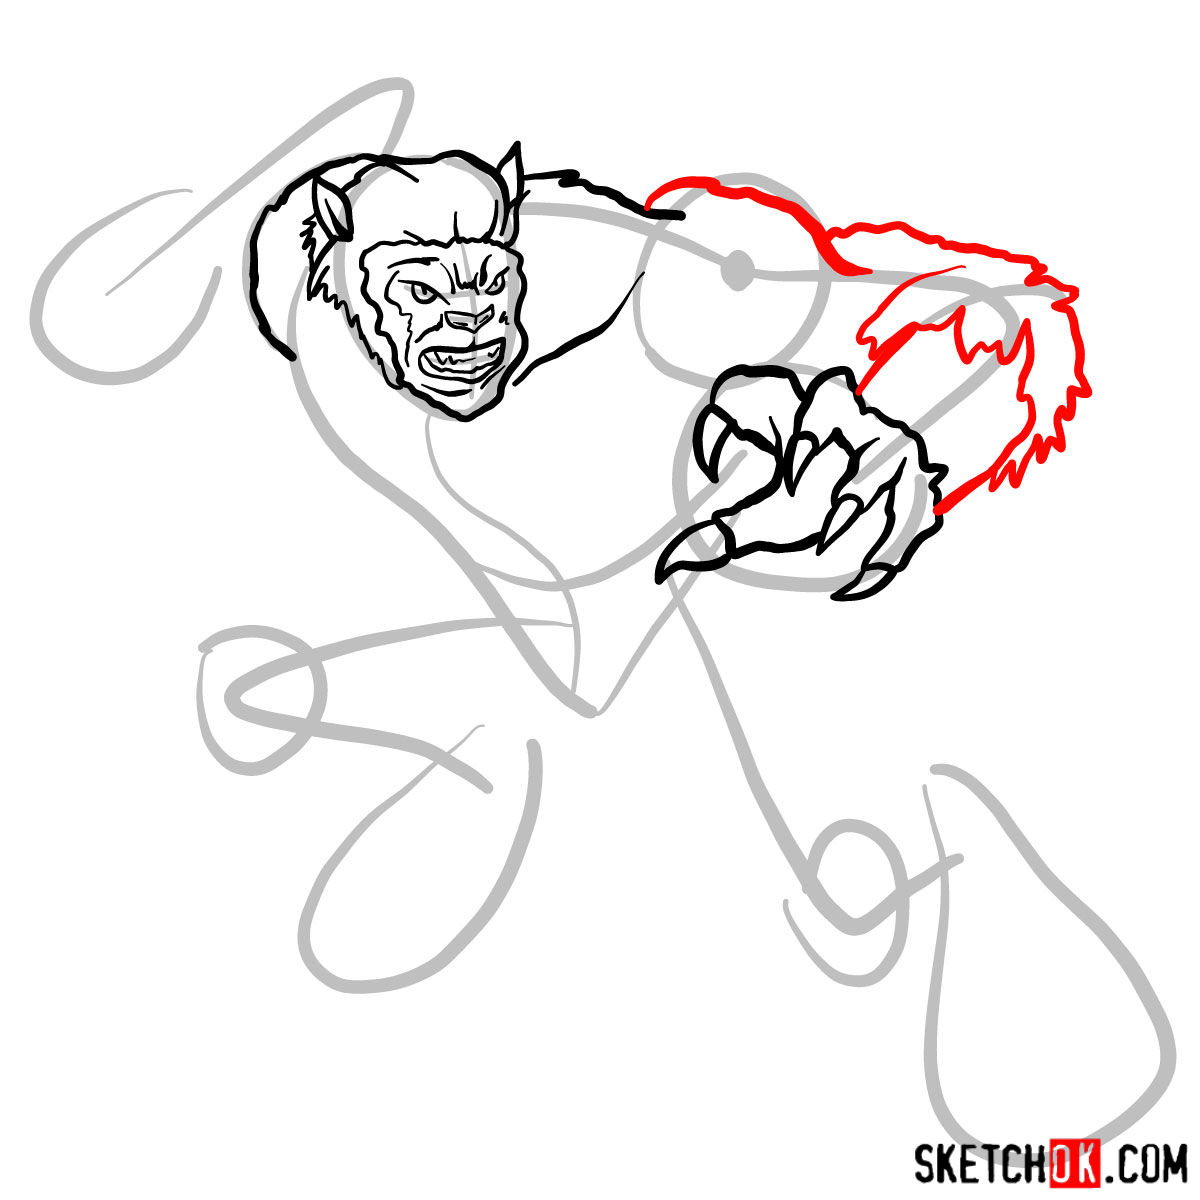 How to draw Beast (X-Men mutant) - step 07